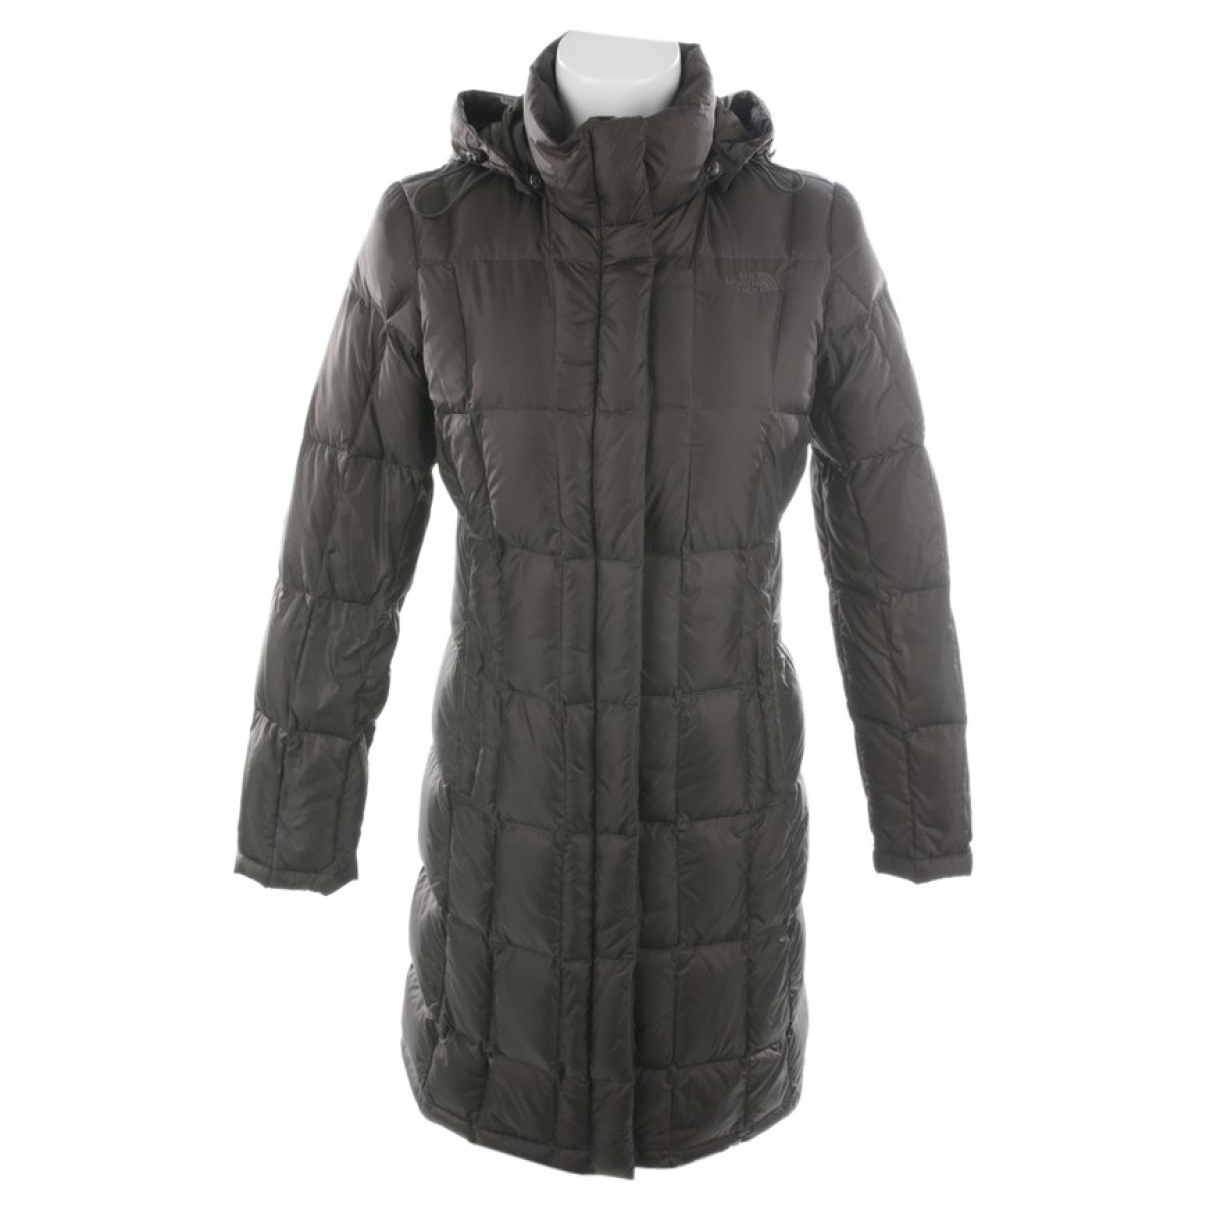 The North Face \N Brown jacket for Women S International